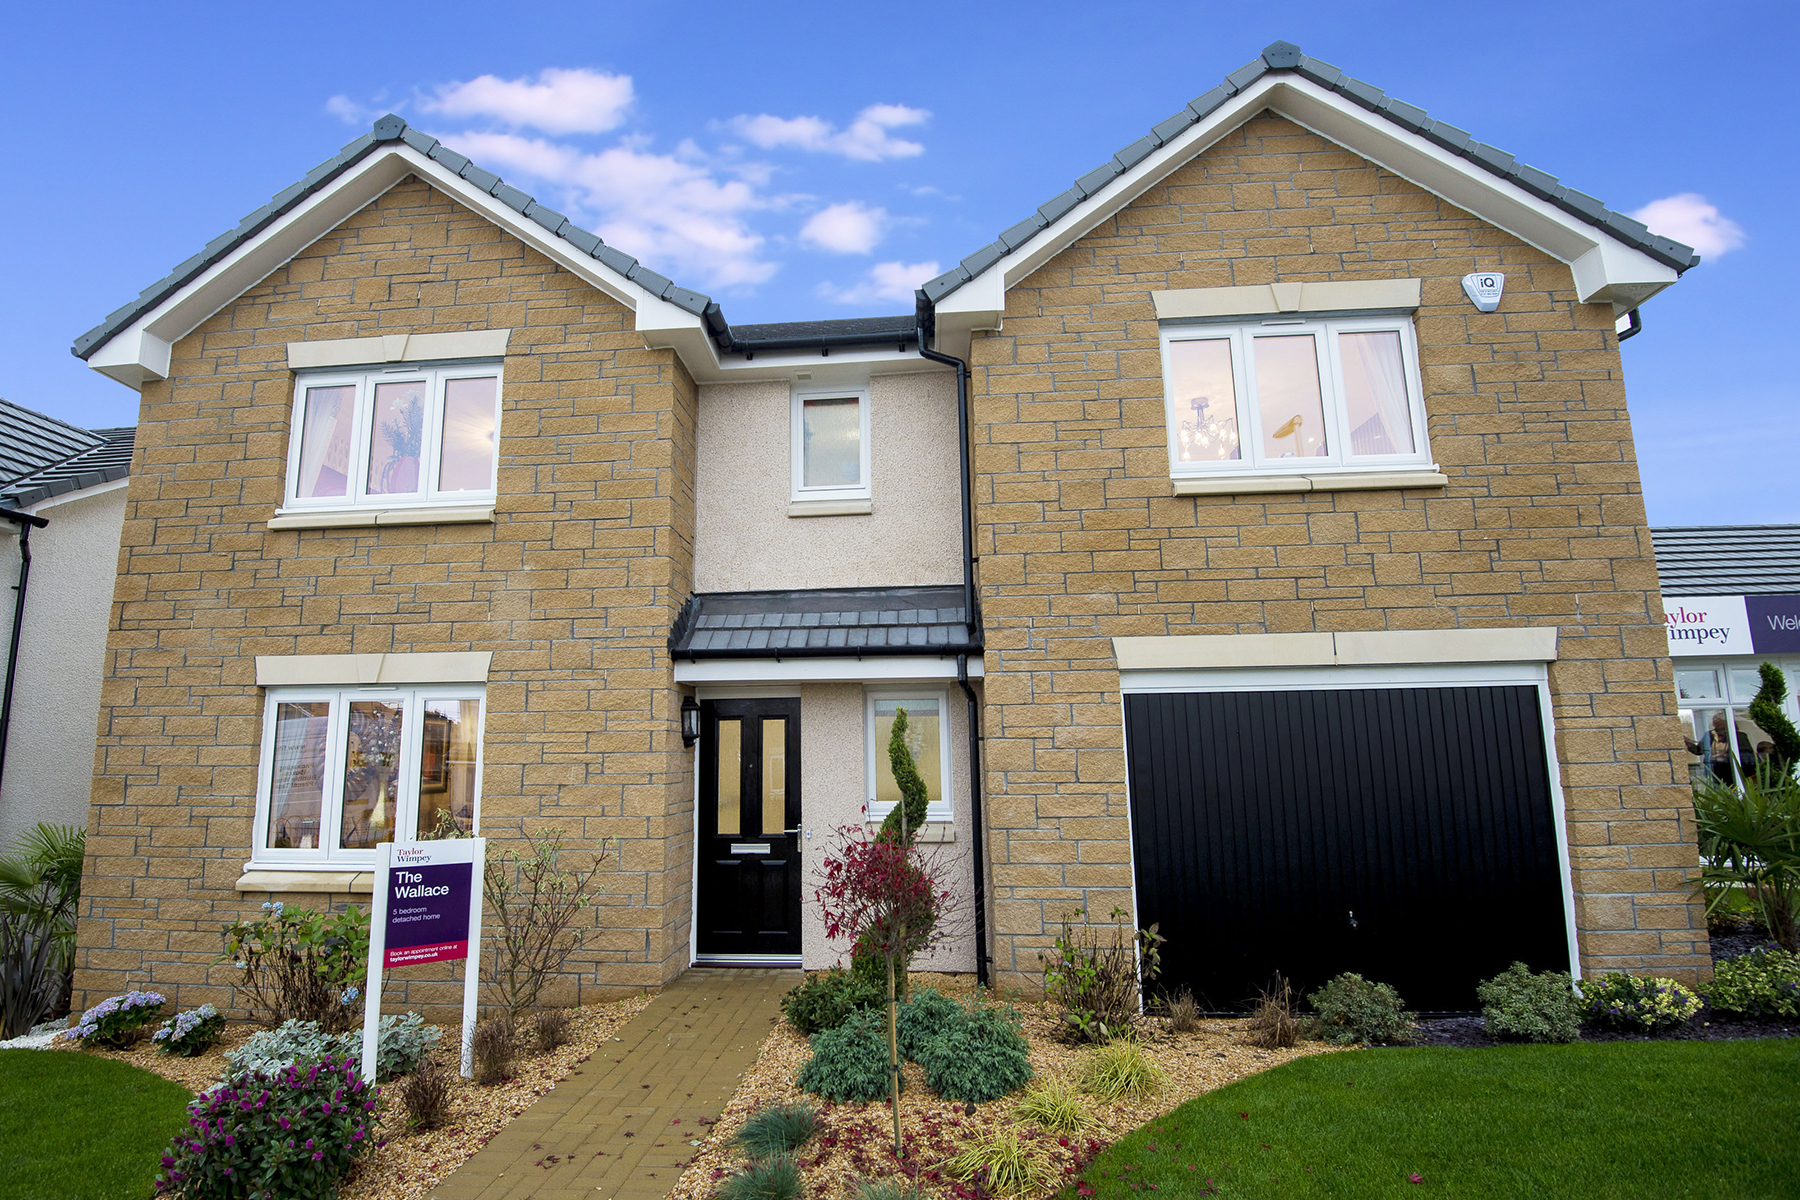 Taylor wimpey masterton gardens new homes for sale in for Wallace homes